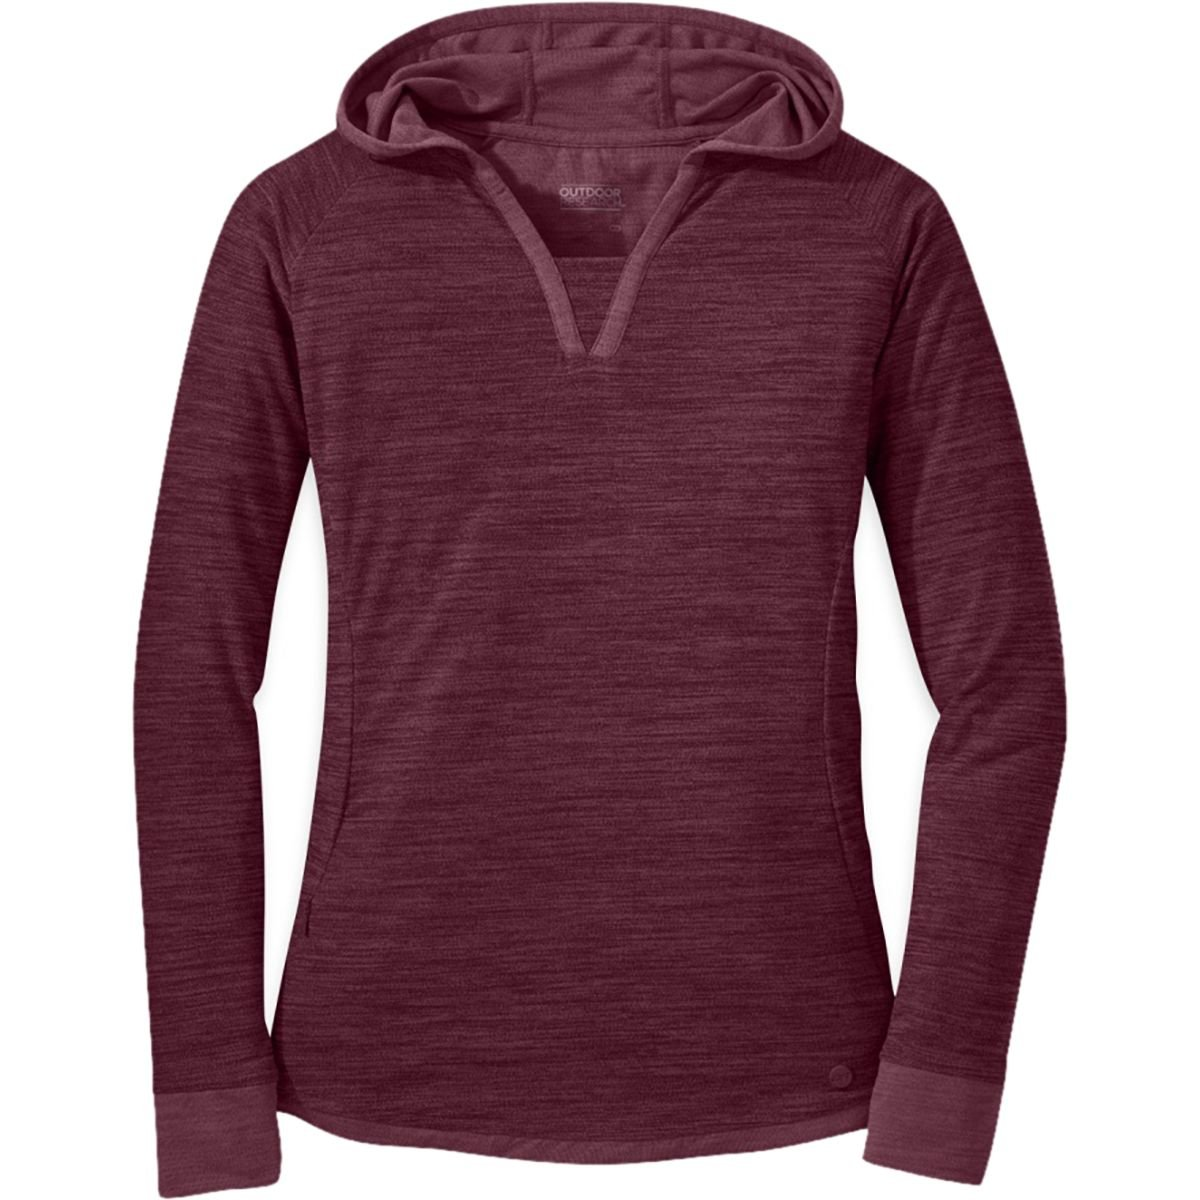 Outdoor Research Women's Zenga Hoody, Pinot, X-Large